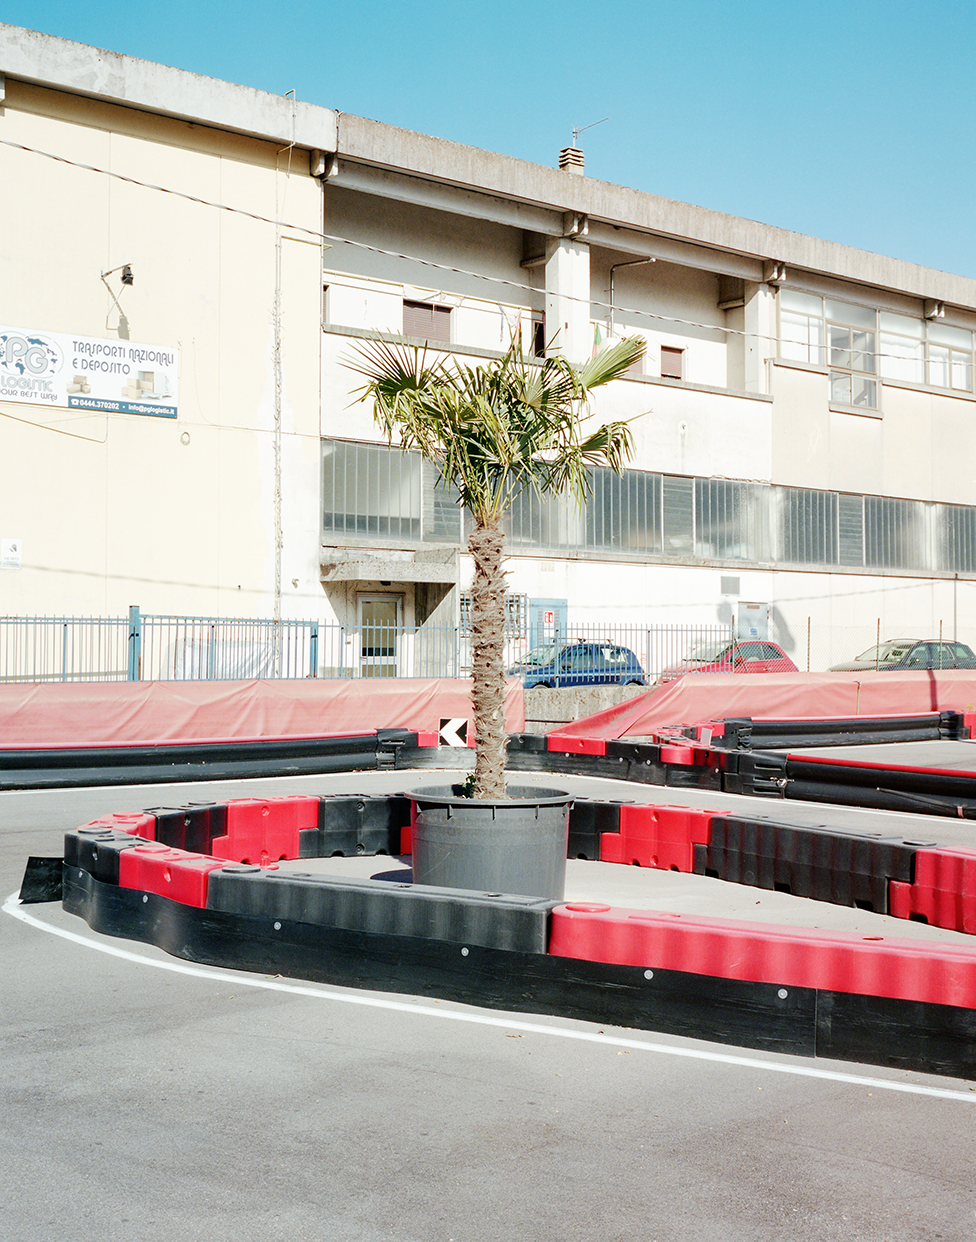 Tavernelle, 2018, Italy